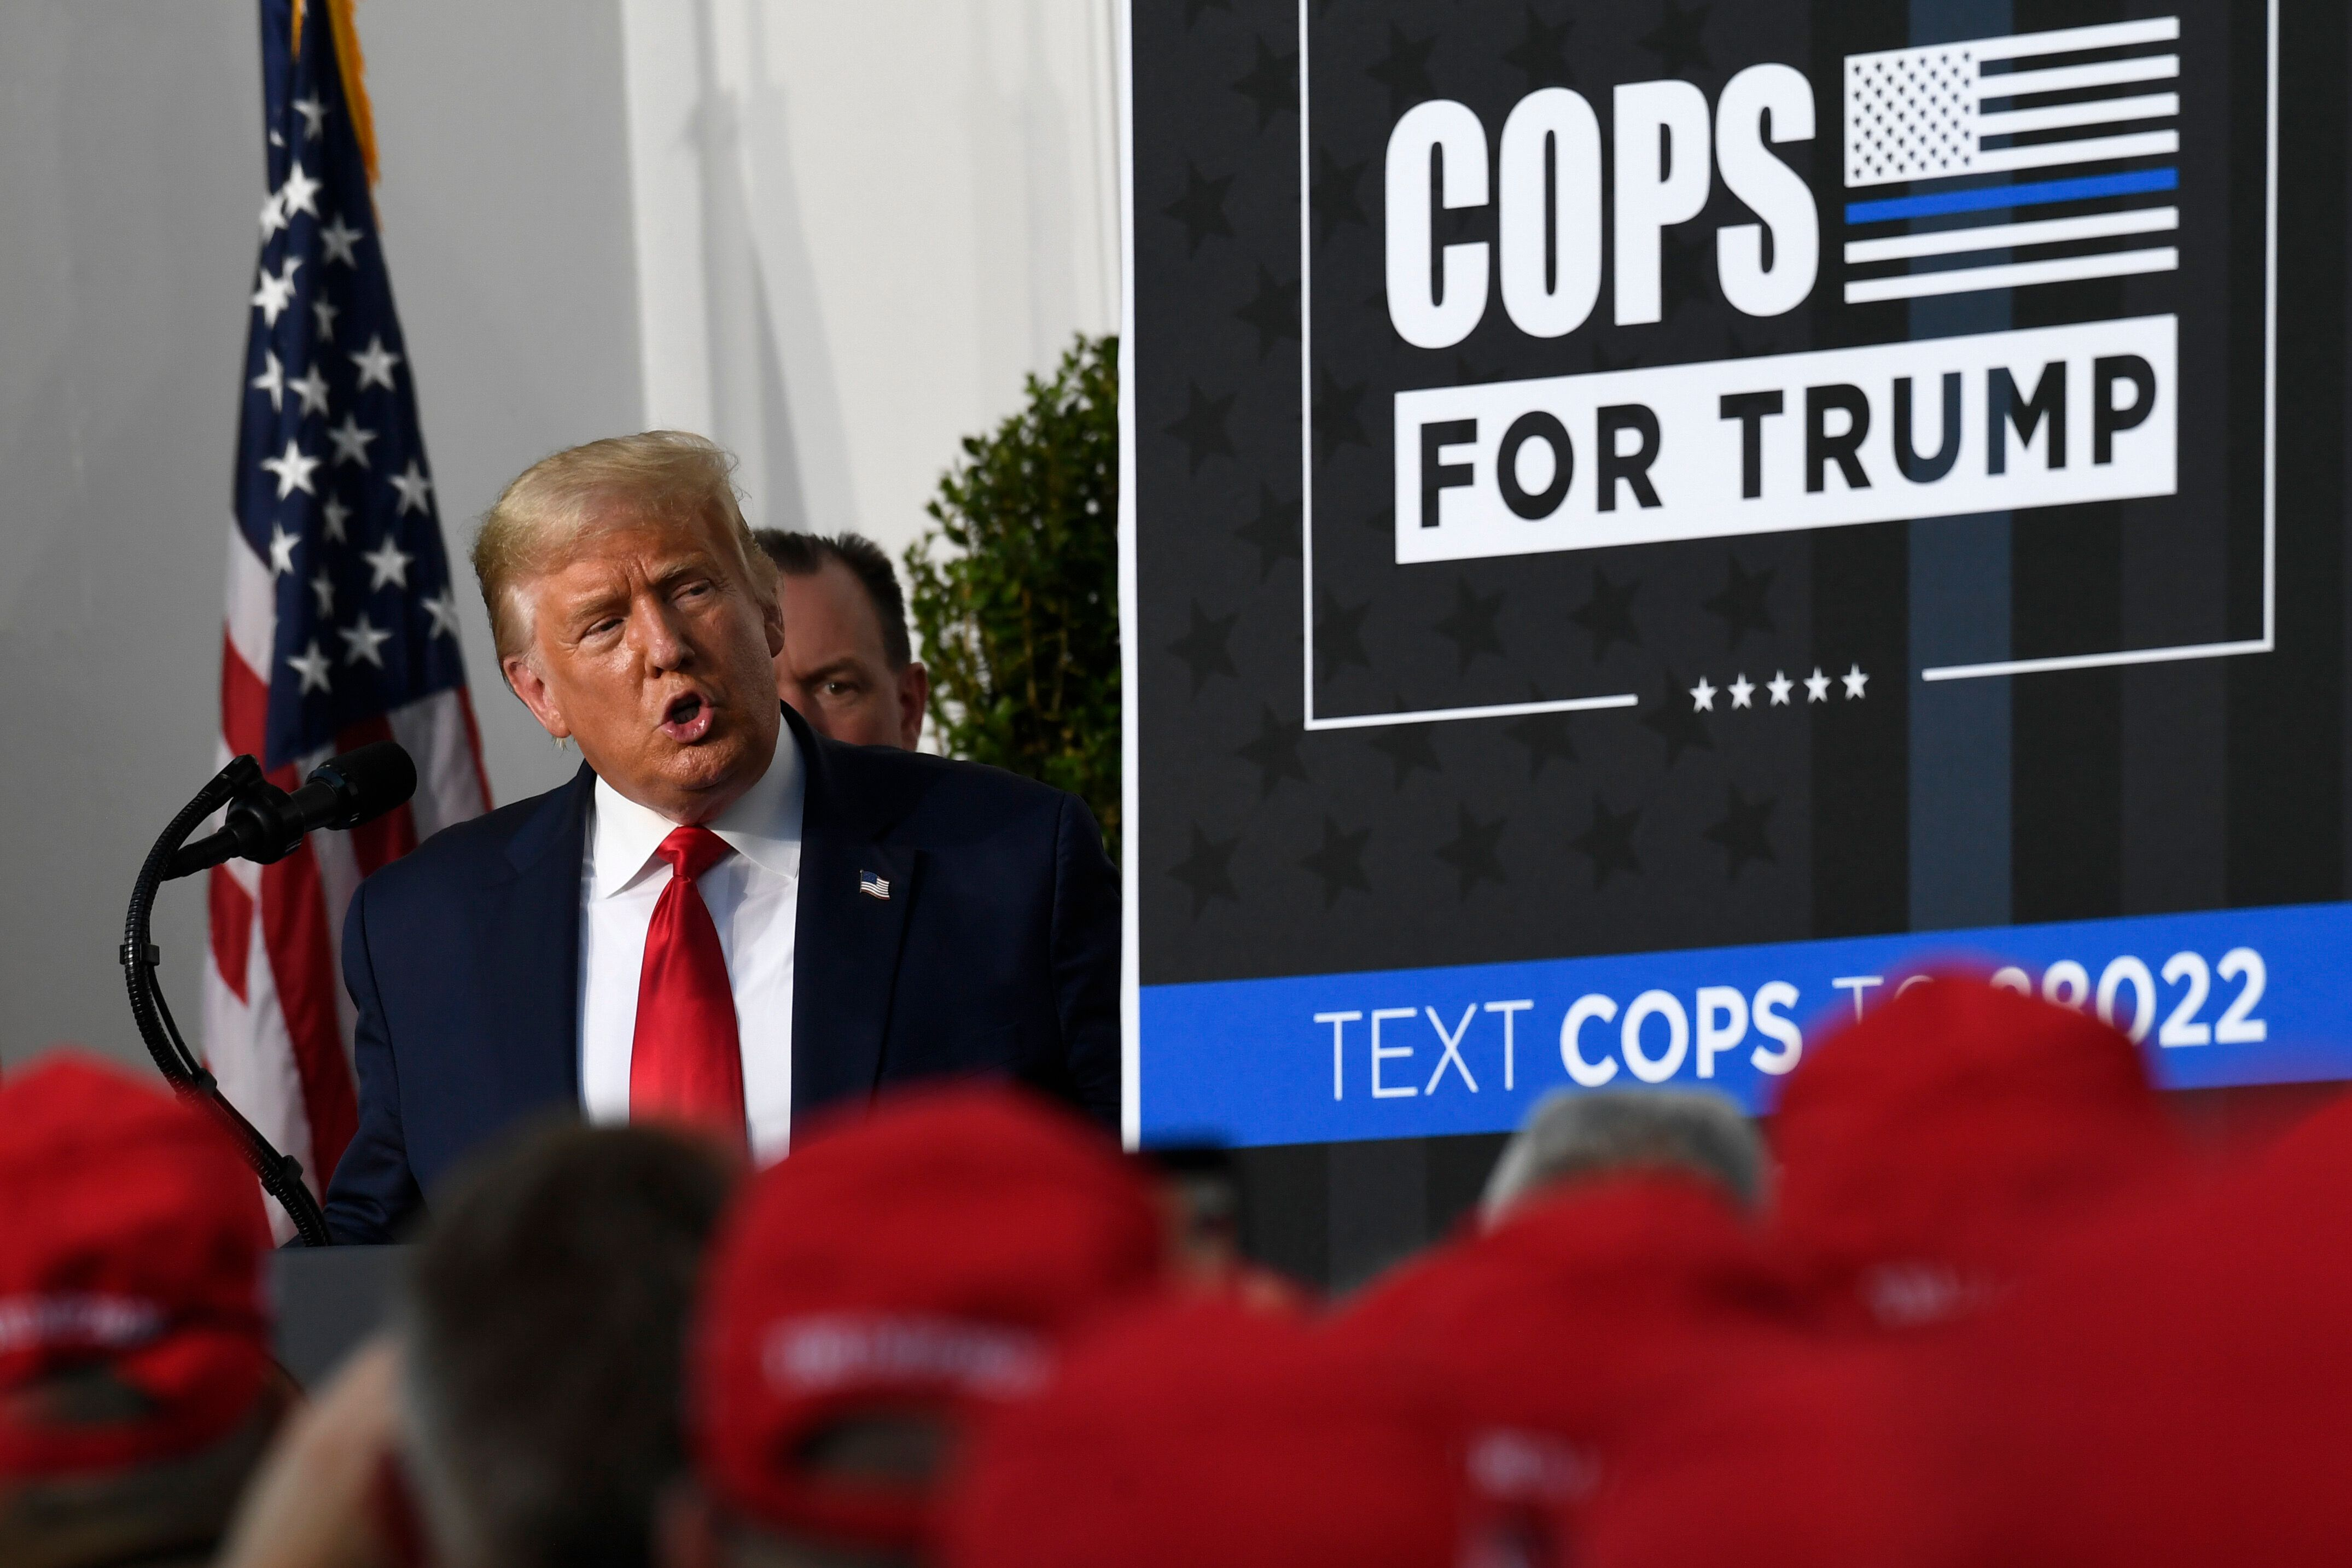 NYPD Union Endorses Trump For President